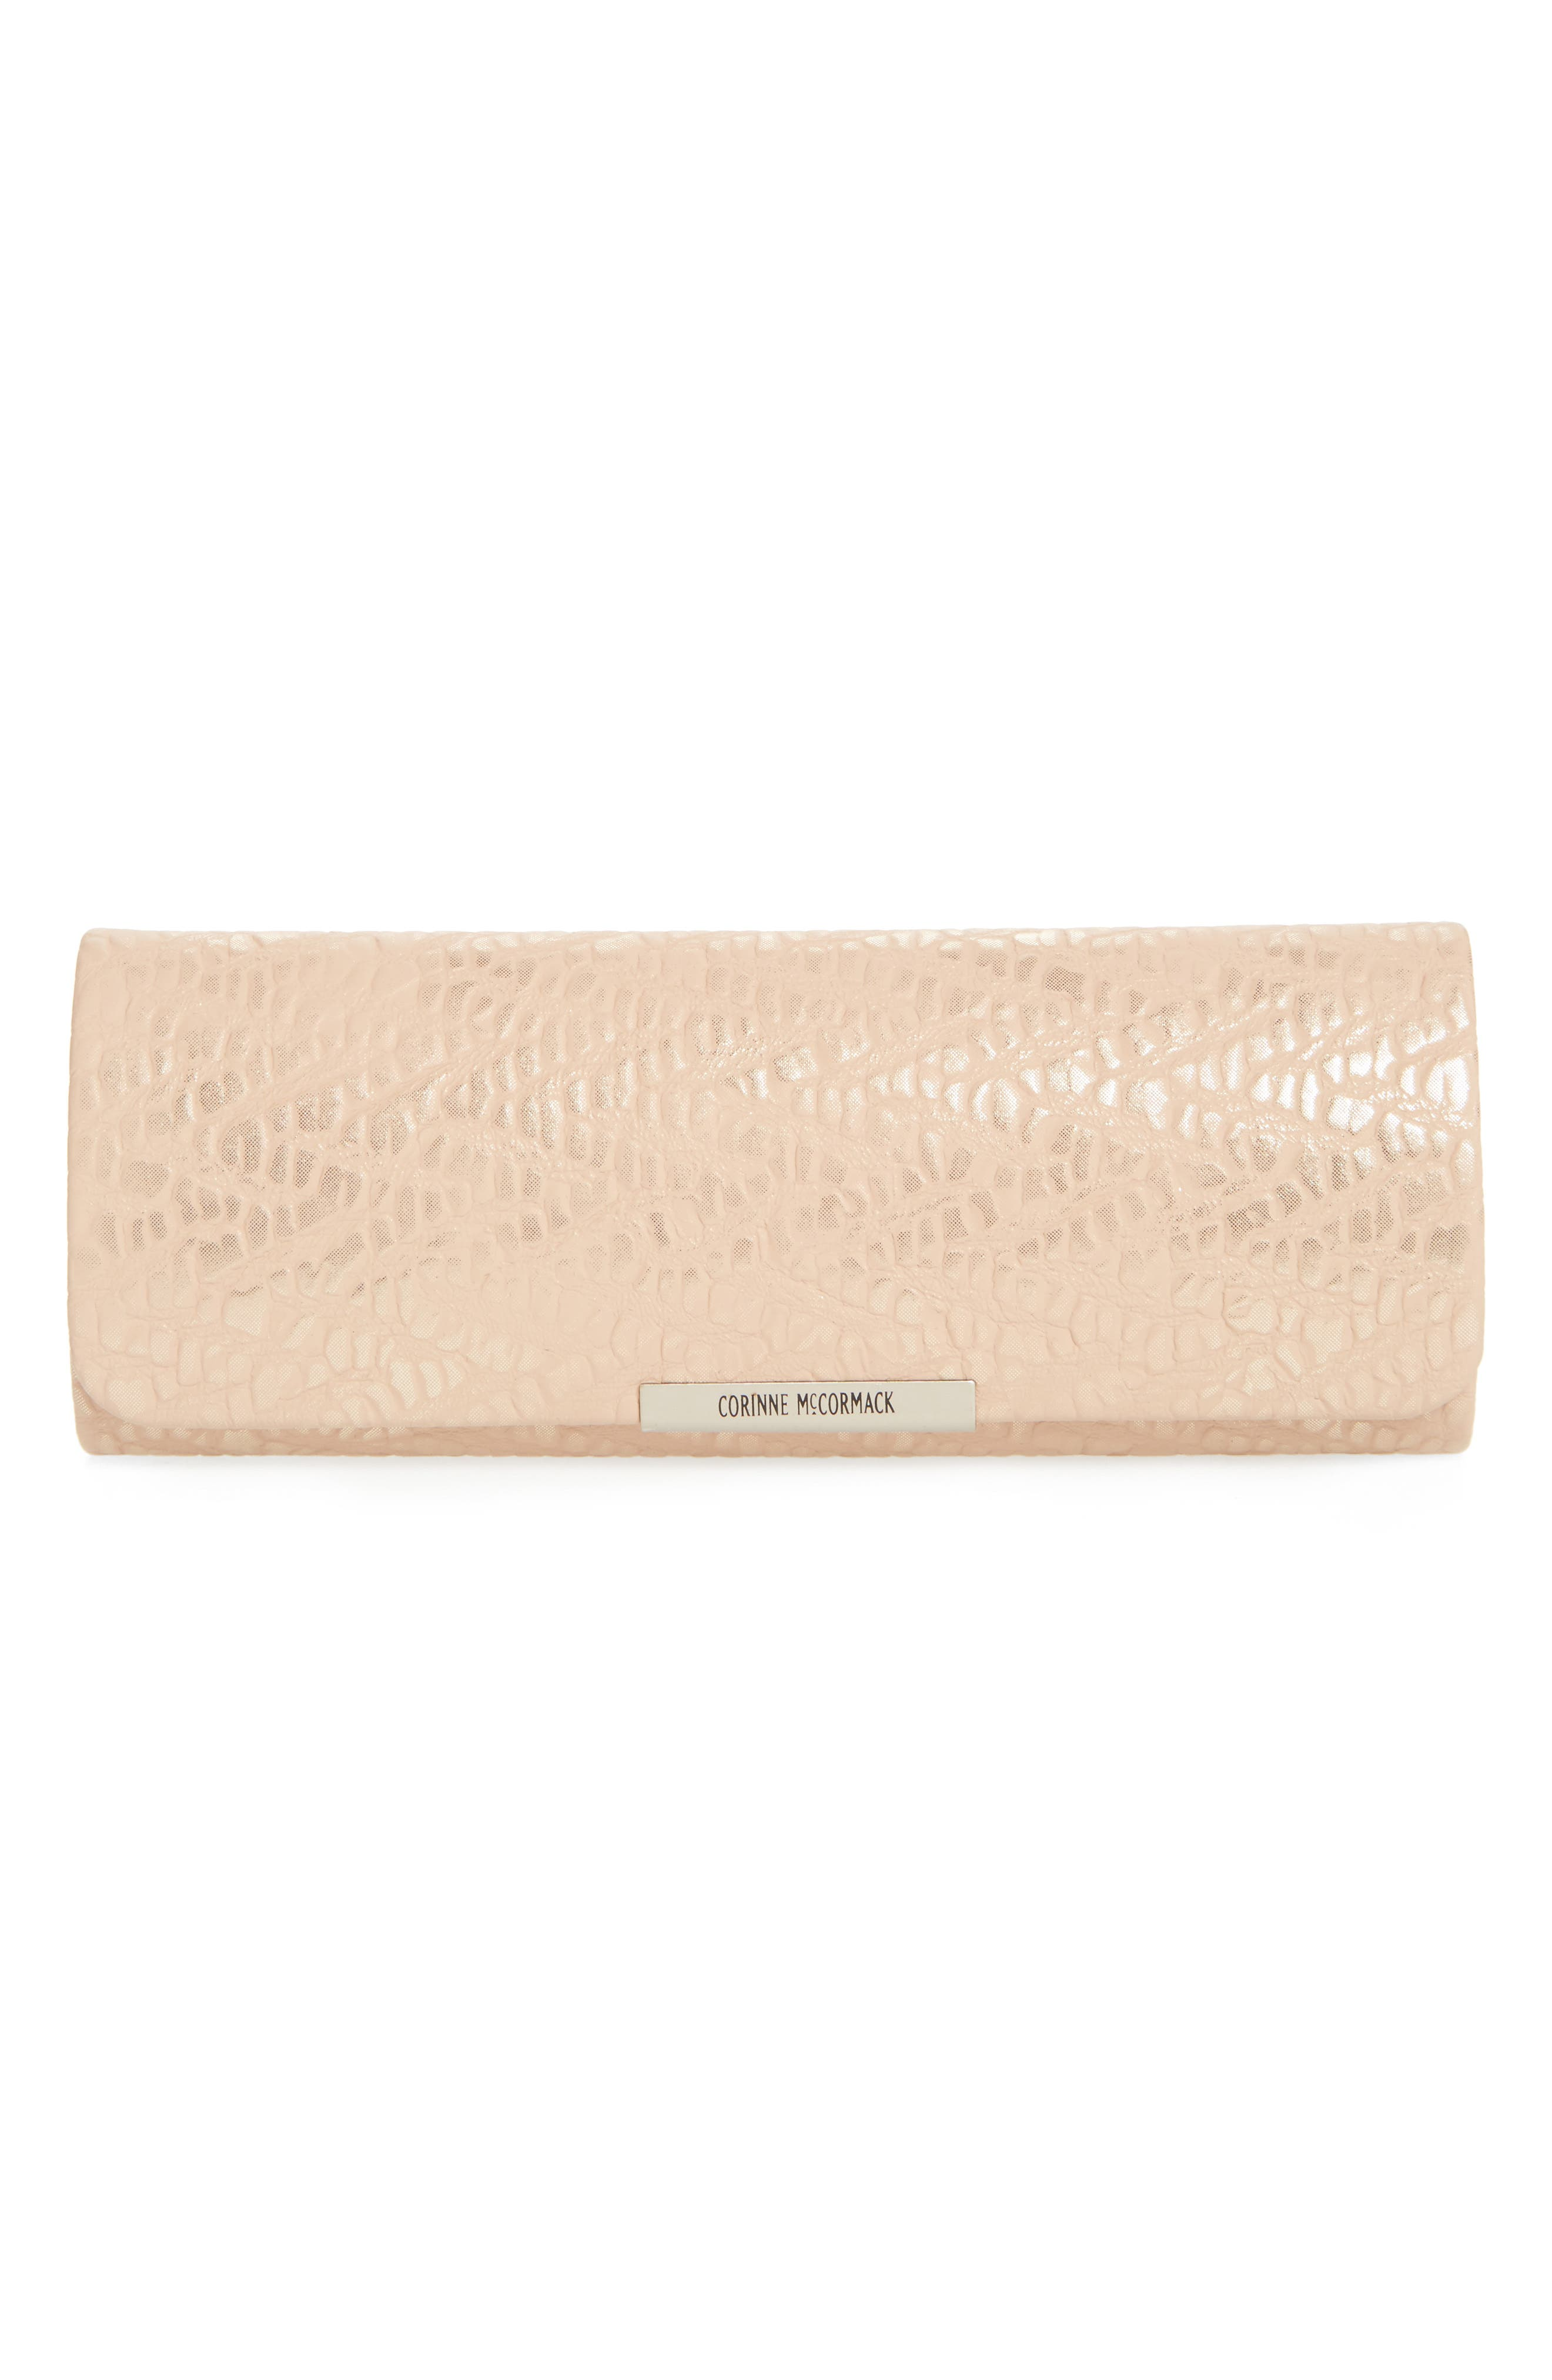 Alternate Image 1 Selected - Corinne McCormack Oval Reading Glasses Case